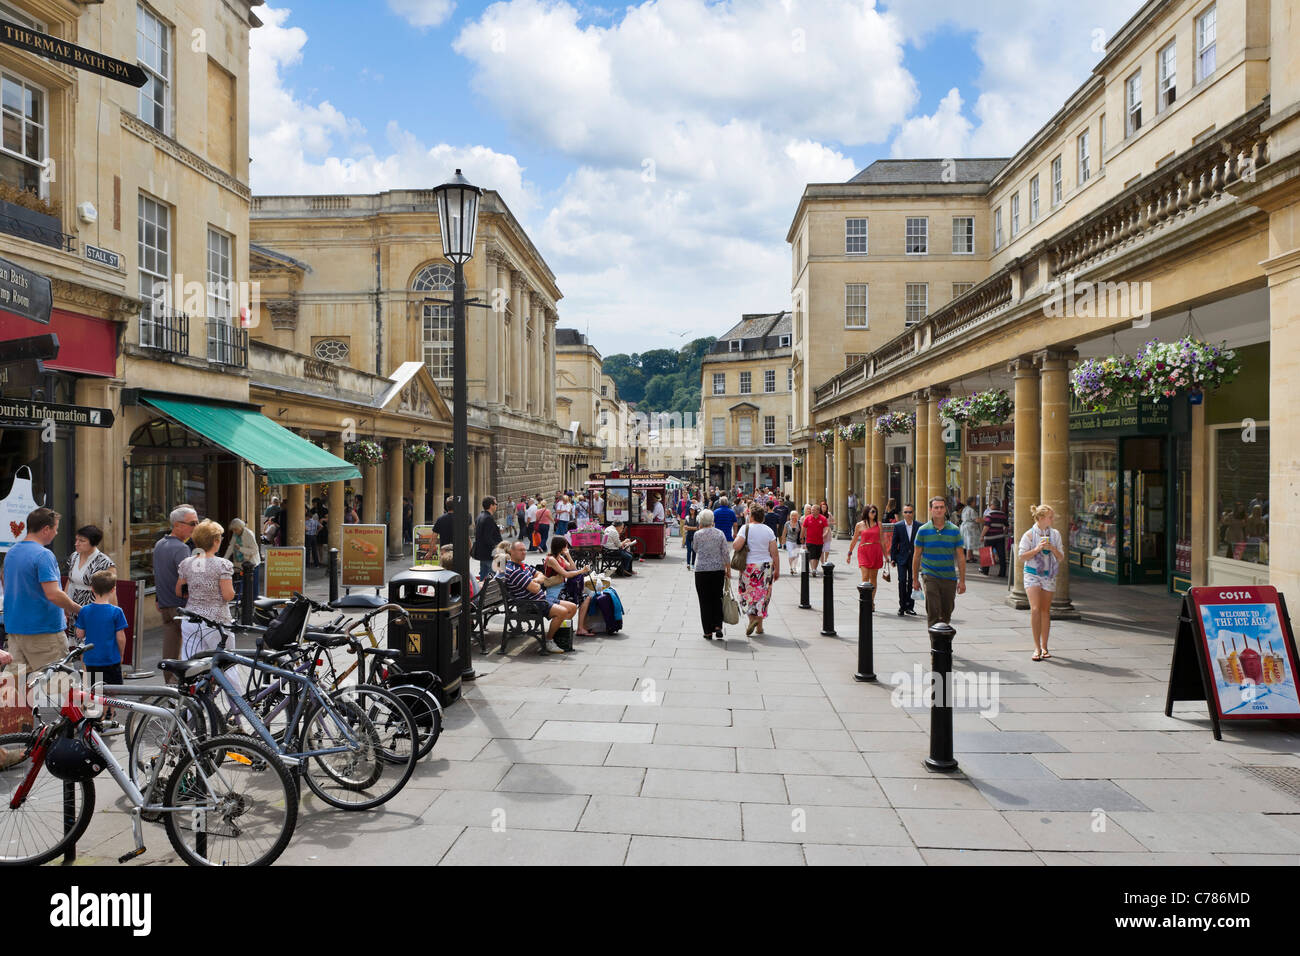 Shops on Stall Street outside the Roman Baths, Bath, Somerset, England, UK - Stock Image